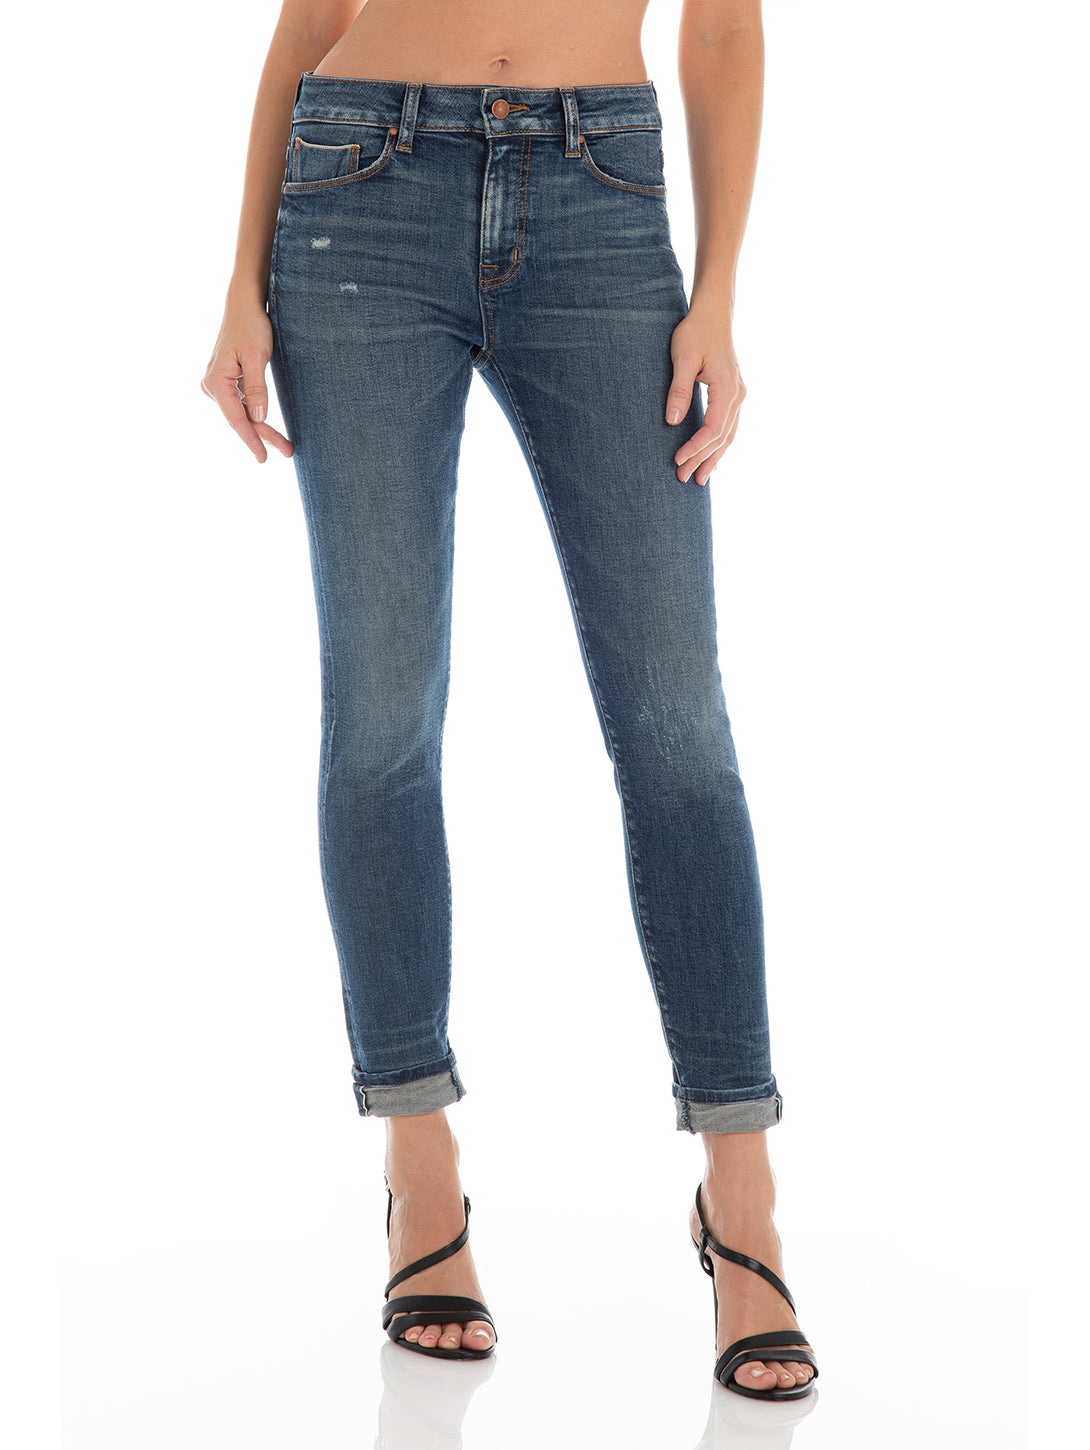 Gwen High Rise Skinny Jean - Rialto-Fidelity Denim-Over the Rainbow